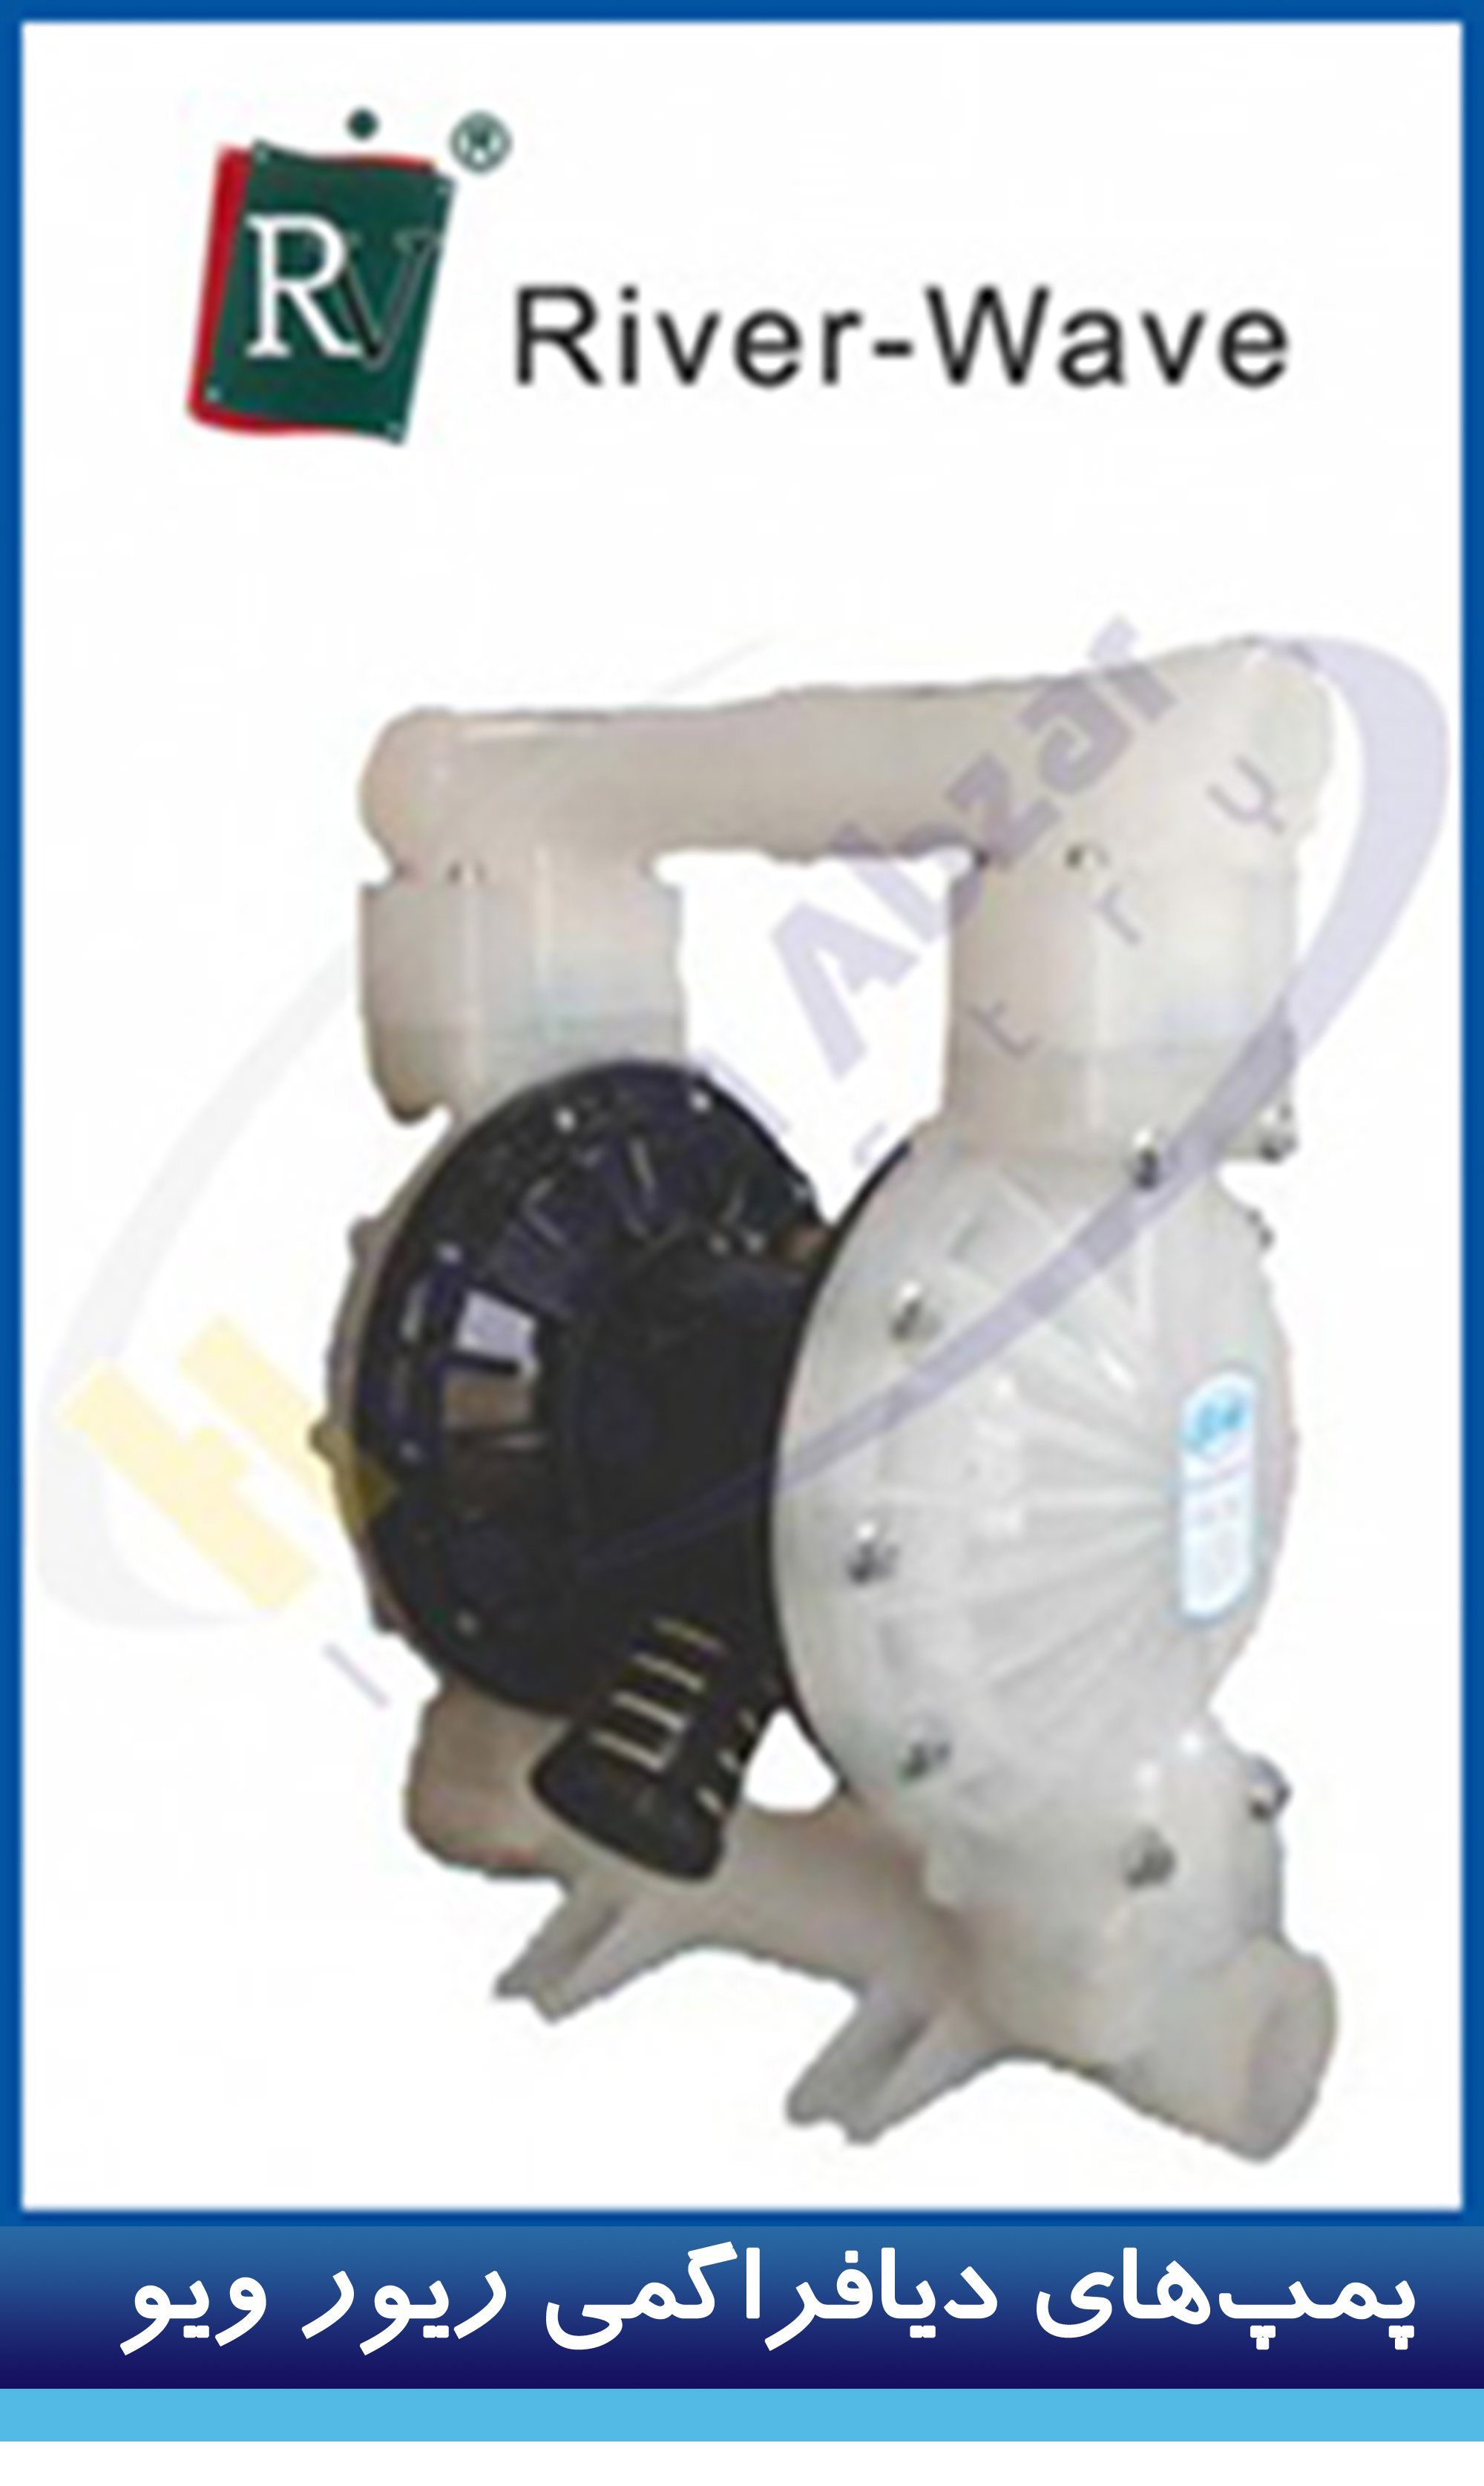 riverwave_diaphragm_pump_400